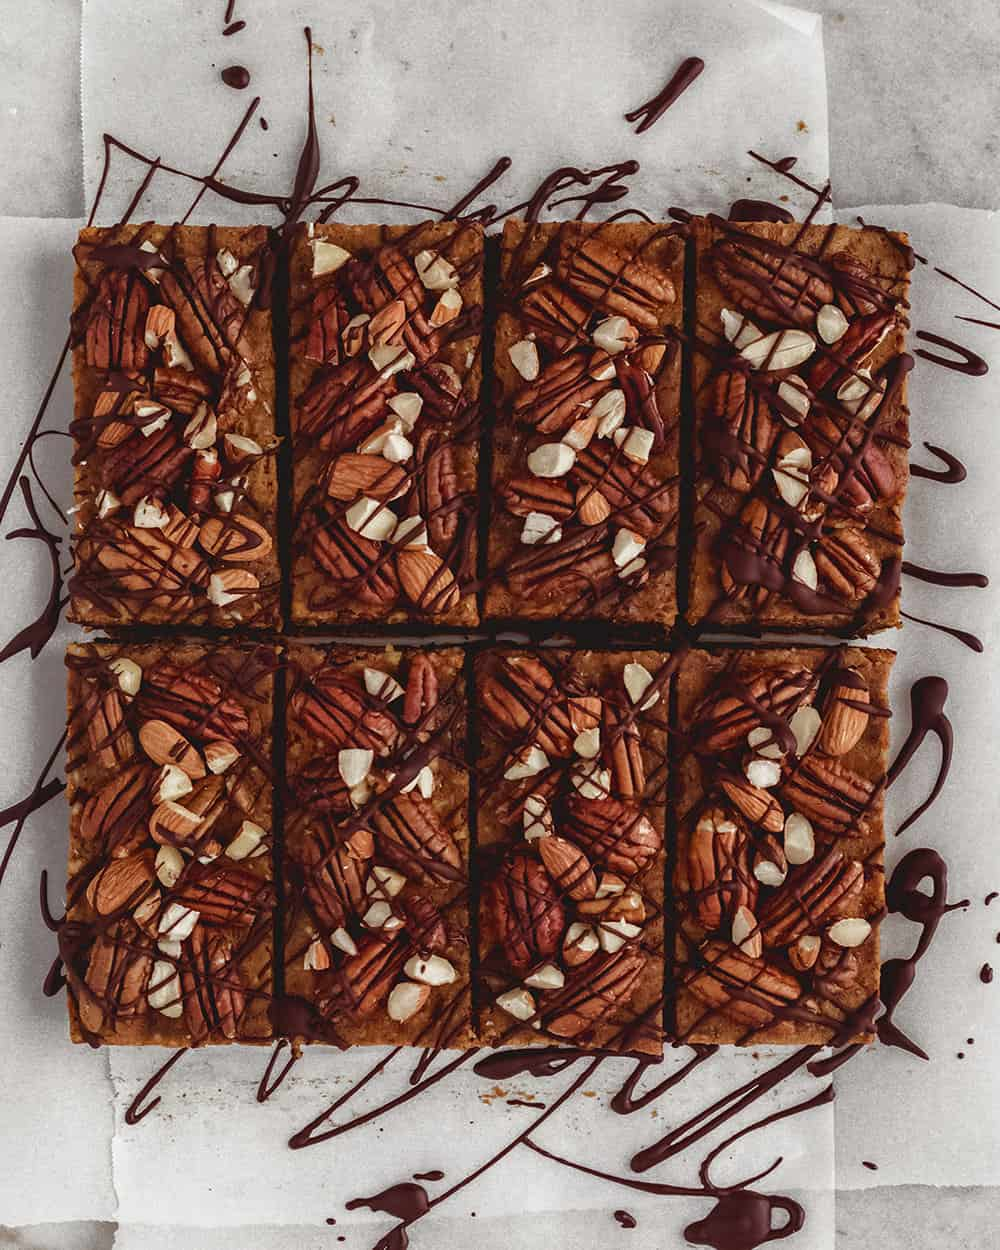 PUMPKIN PIE DESSERT BARS - INGREDIENTSPUMPKIN LAYER:2 cups pecans3/4 cup cashews1/2 cup pumpkin puree8 medjool dates1 tsp cinnamon3 tb non-dairy milkpinch sea saltCHOCOLATE LAYER:3/4 cup cacao powder1/2 cup melted coconut oil3 tablespoons Maple Guild Grade A Maple Syrup